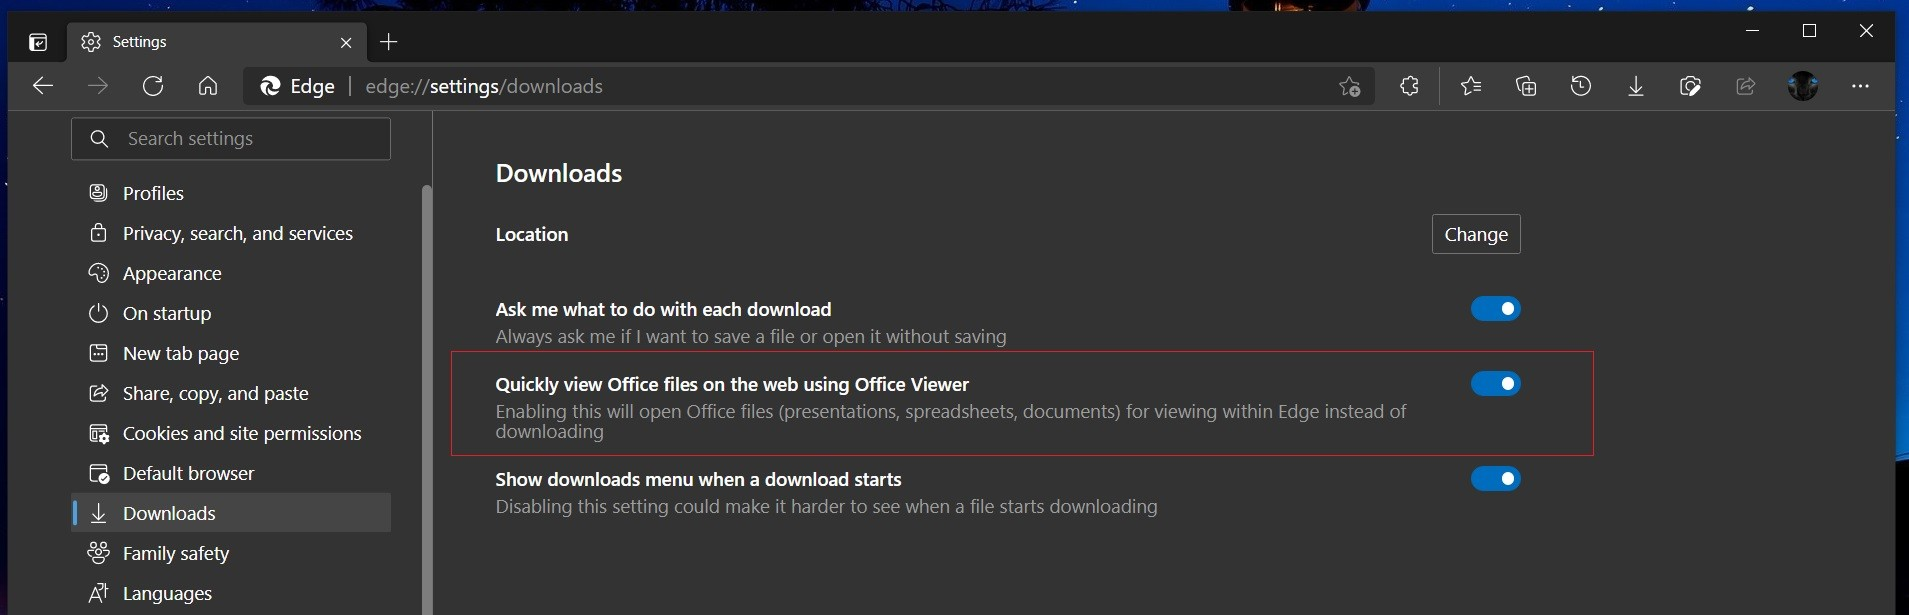 The new toggle for Office Viewer in the Downloads settings page in Edge